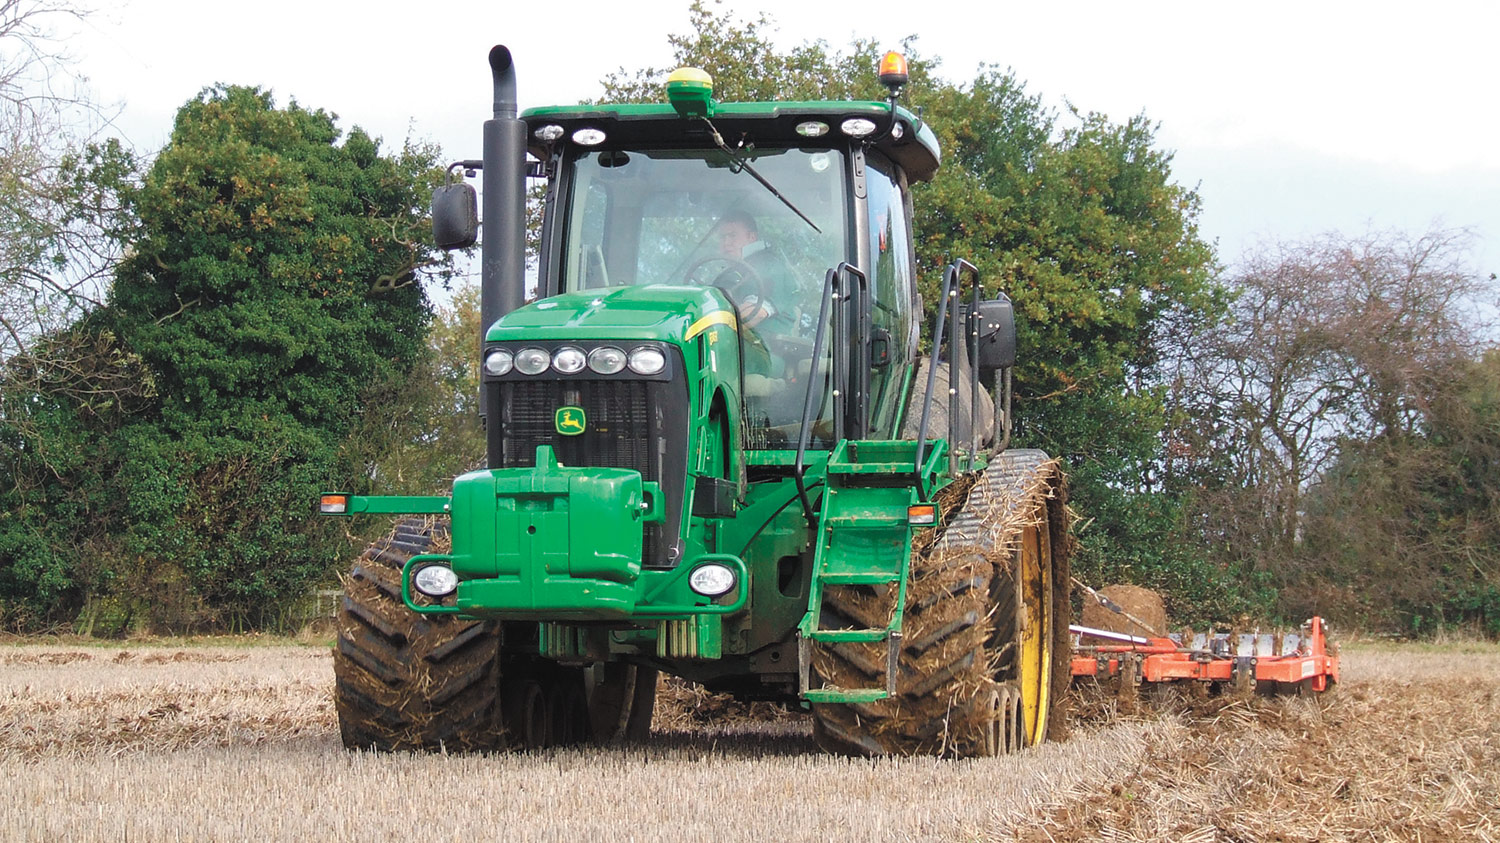 First drive: New tracked John Deere meets expectations